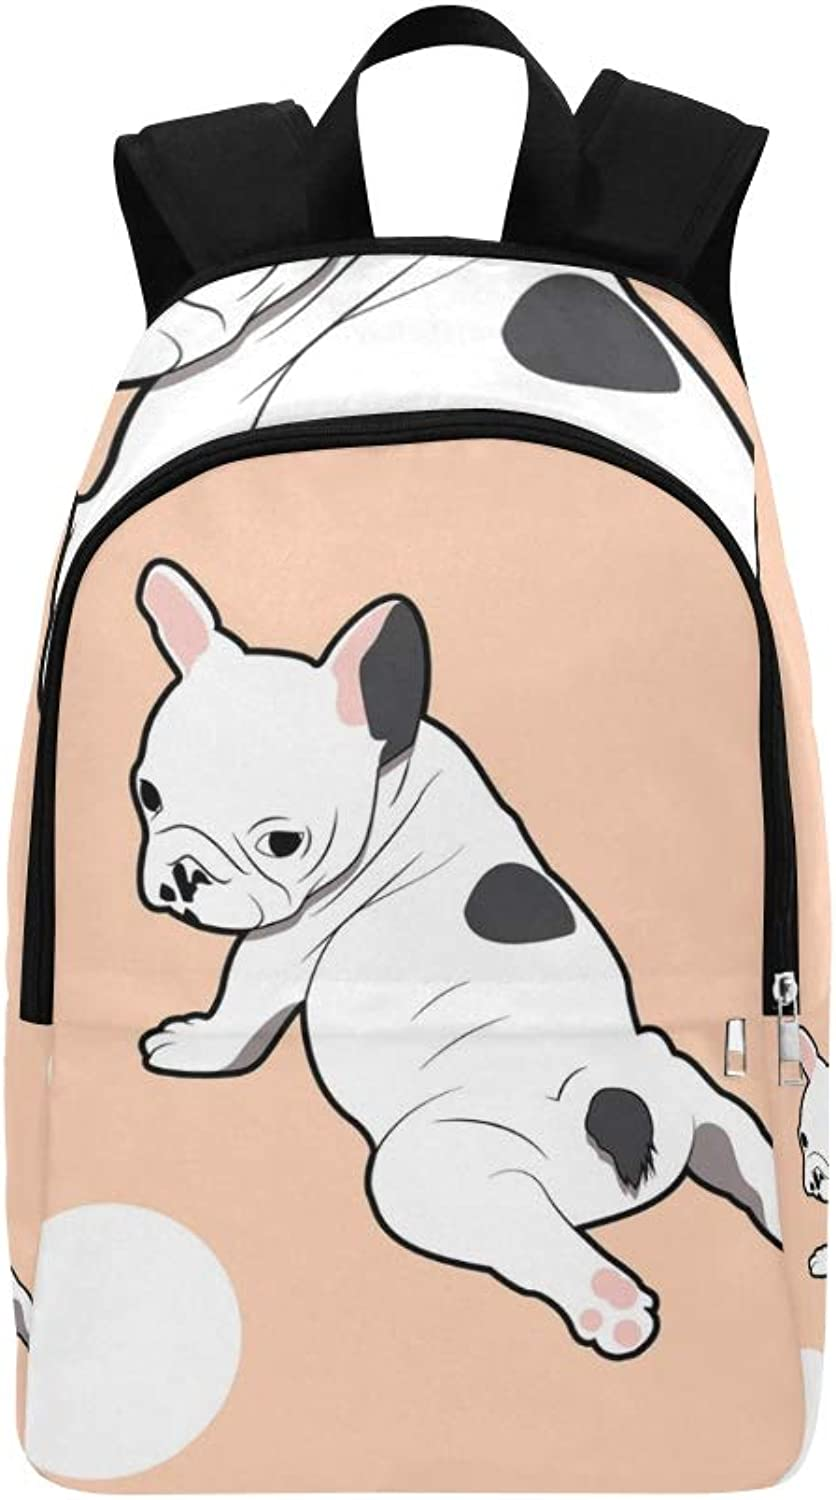 French Bulldog Yoga Look Back Casual Daypack Travel Bag College School Backpack for Mens and Women